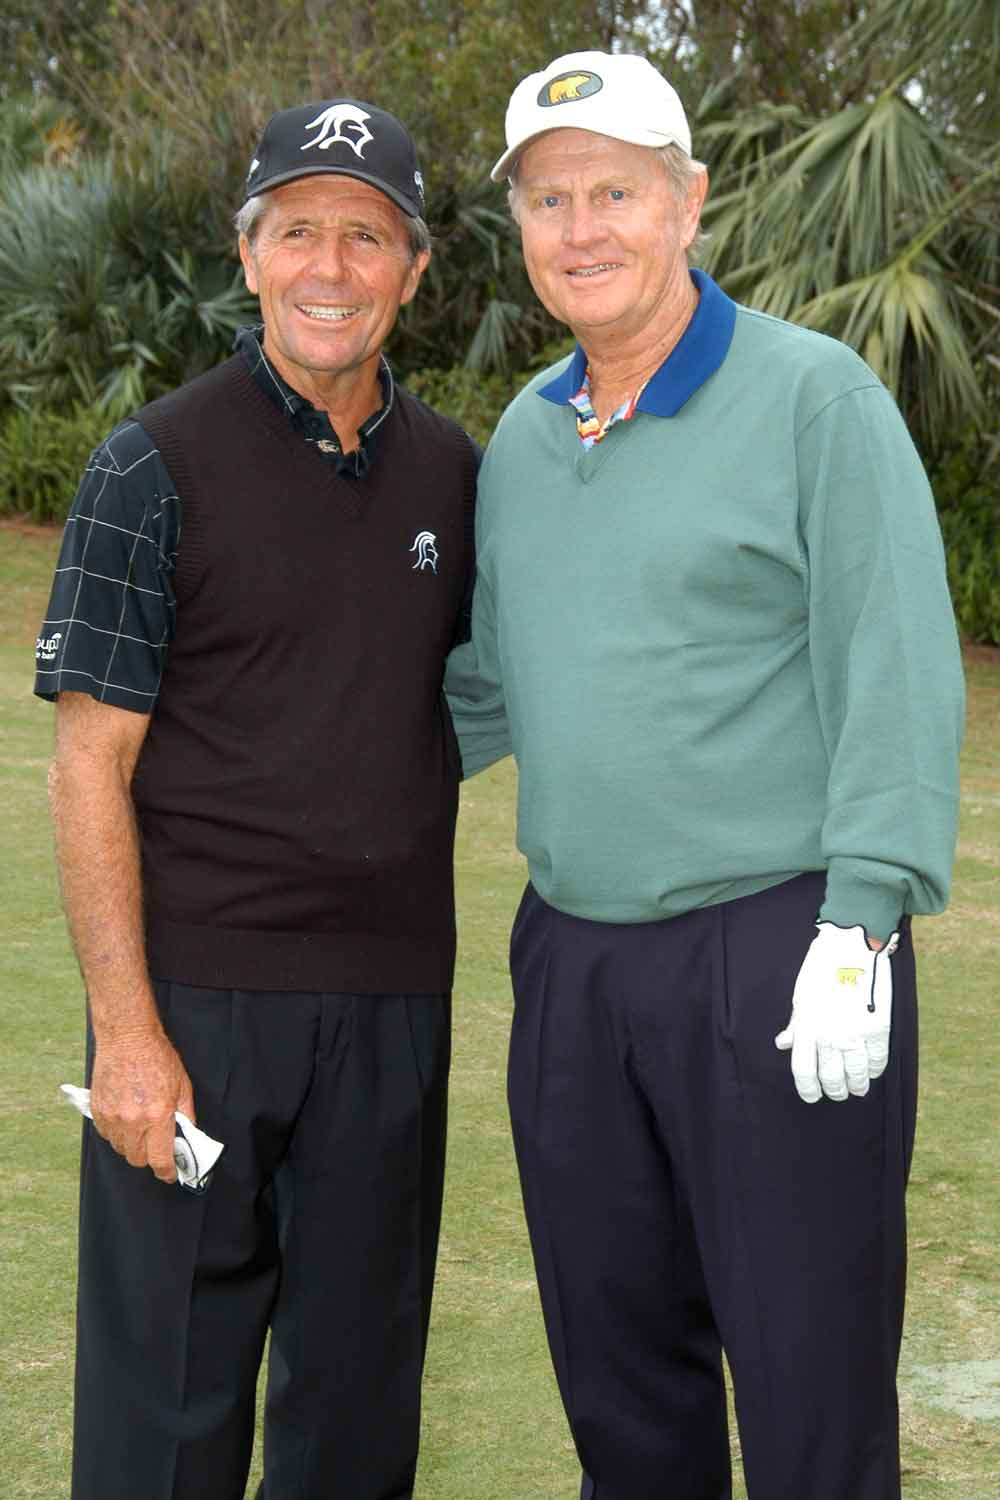 Gary Palmer and Jack Nicklaus, two Legends of Golf